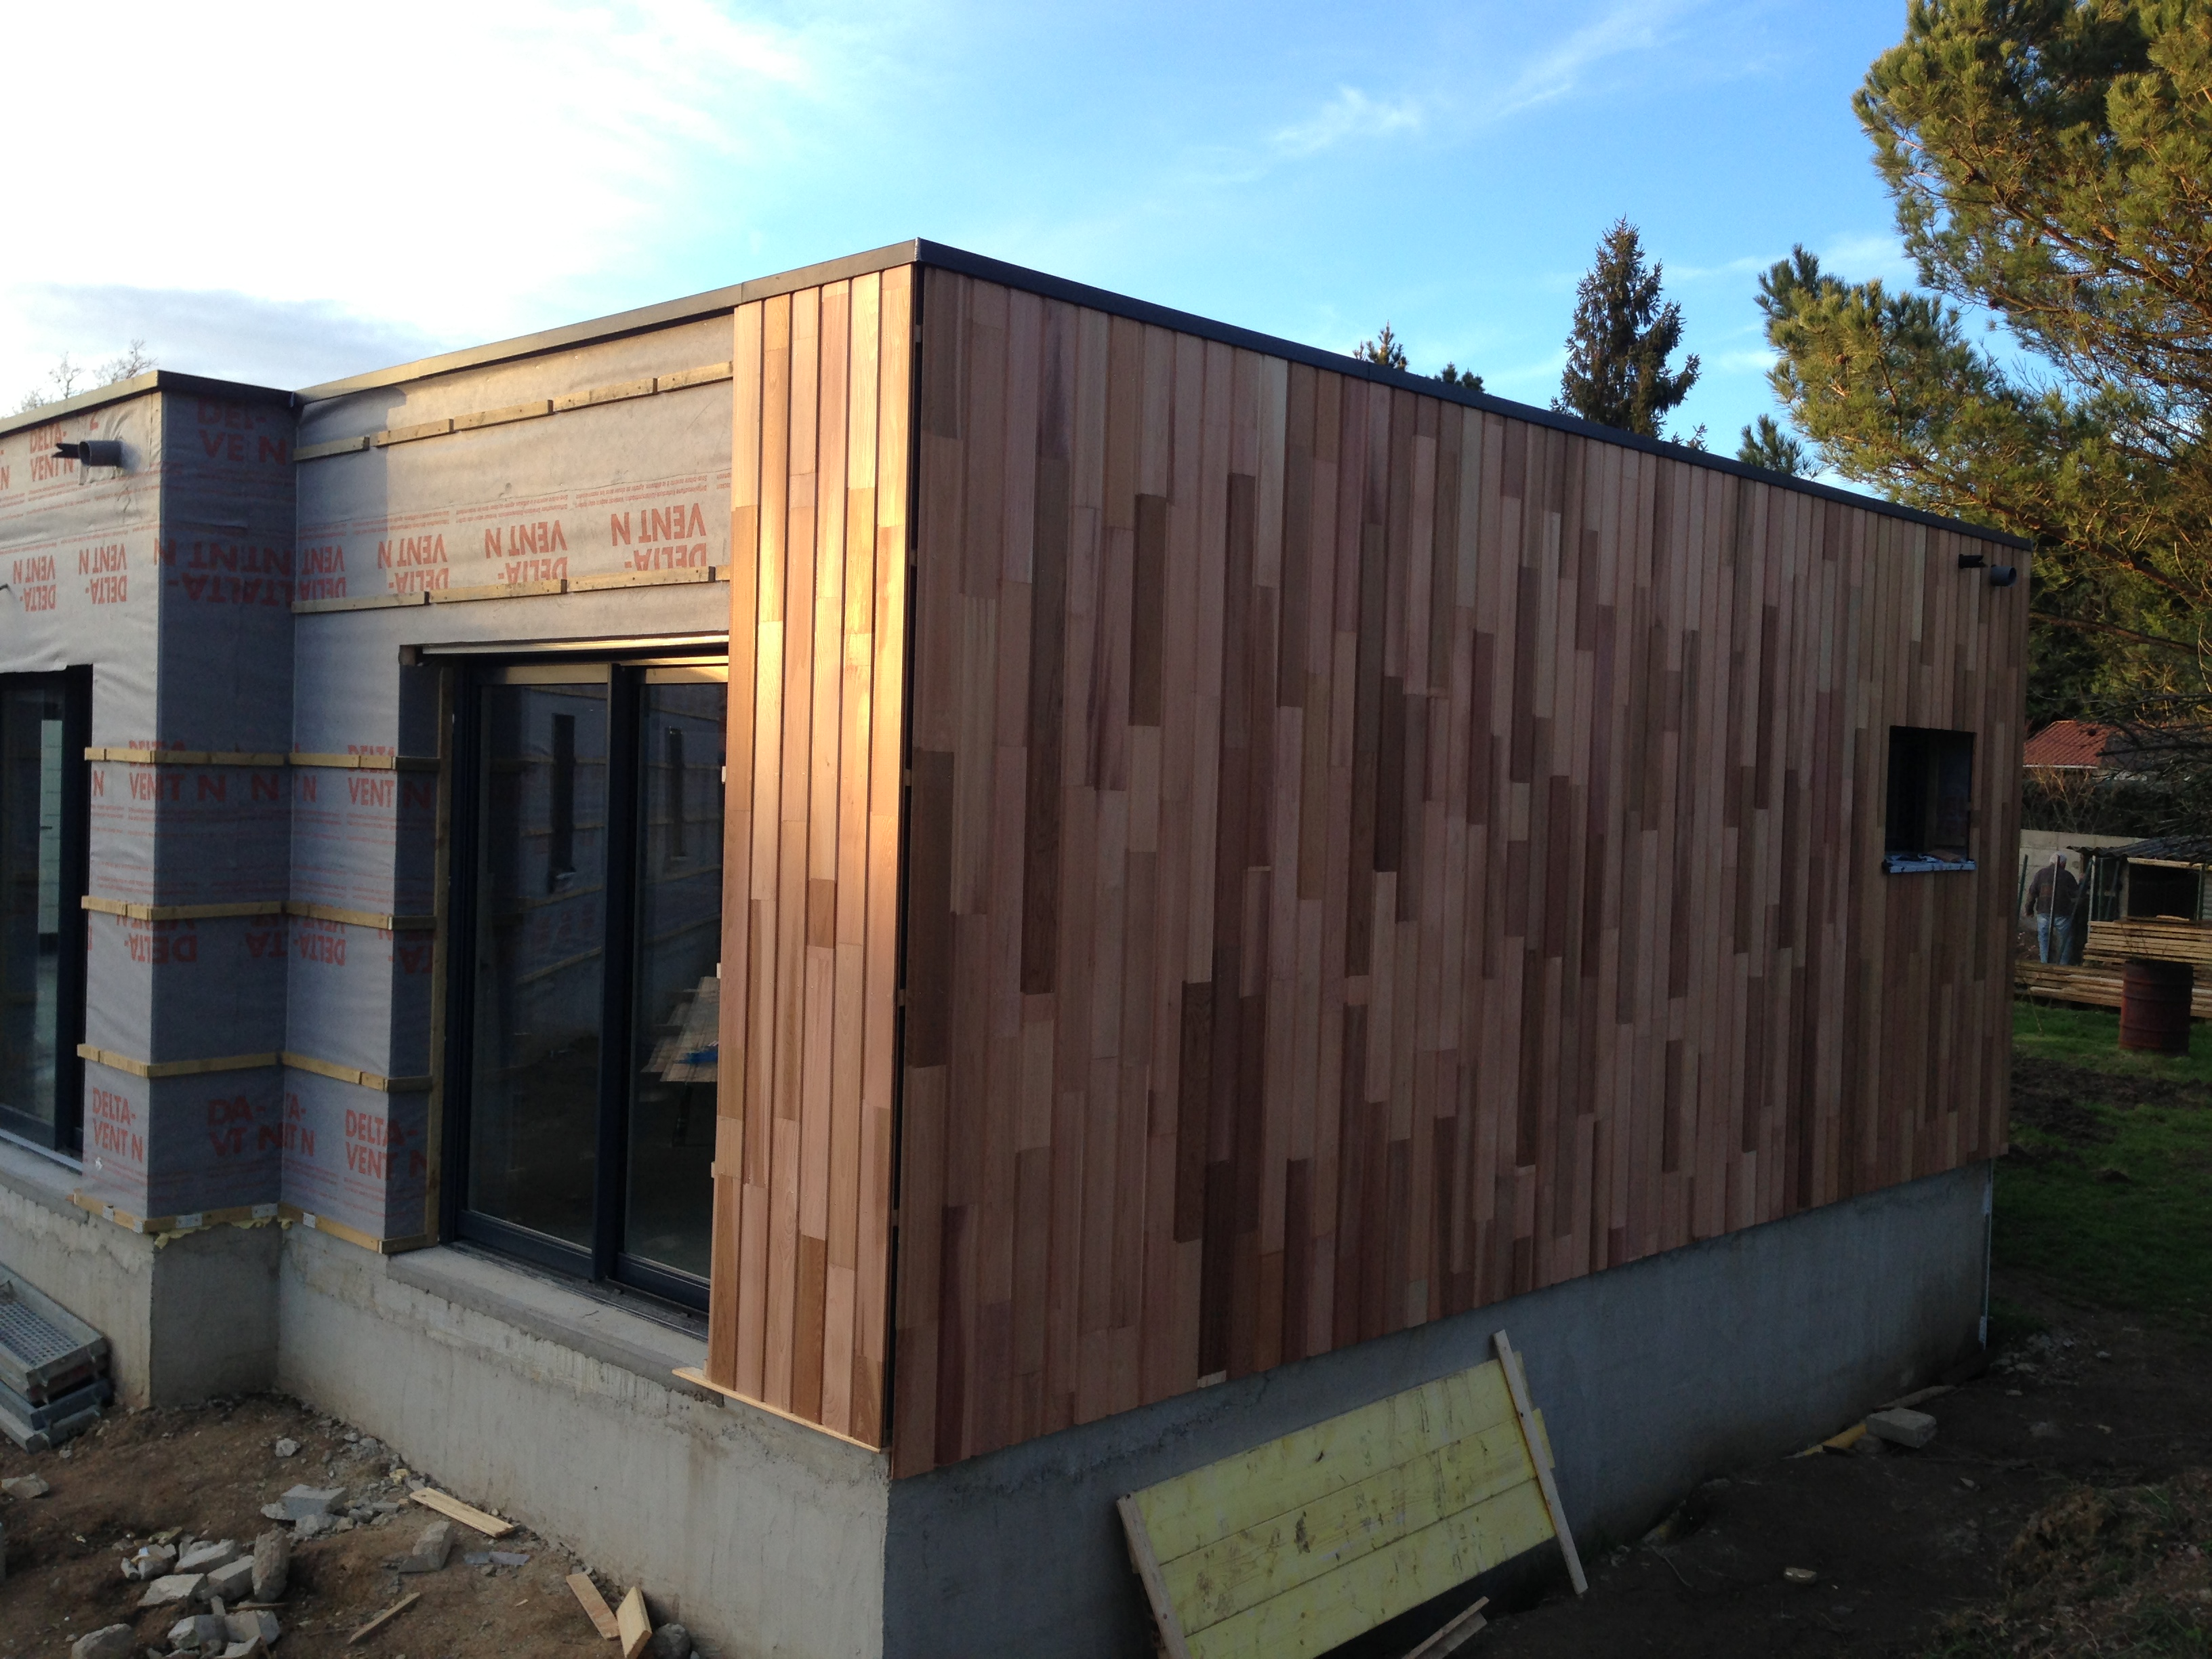 1000 ideas about bardage red cedar on pinterest mur en - Bardage red cedar ...